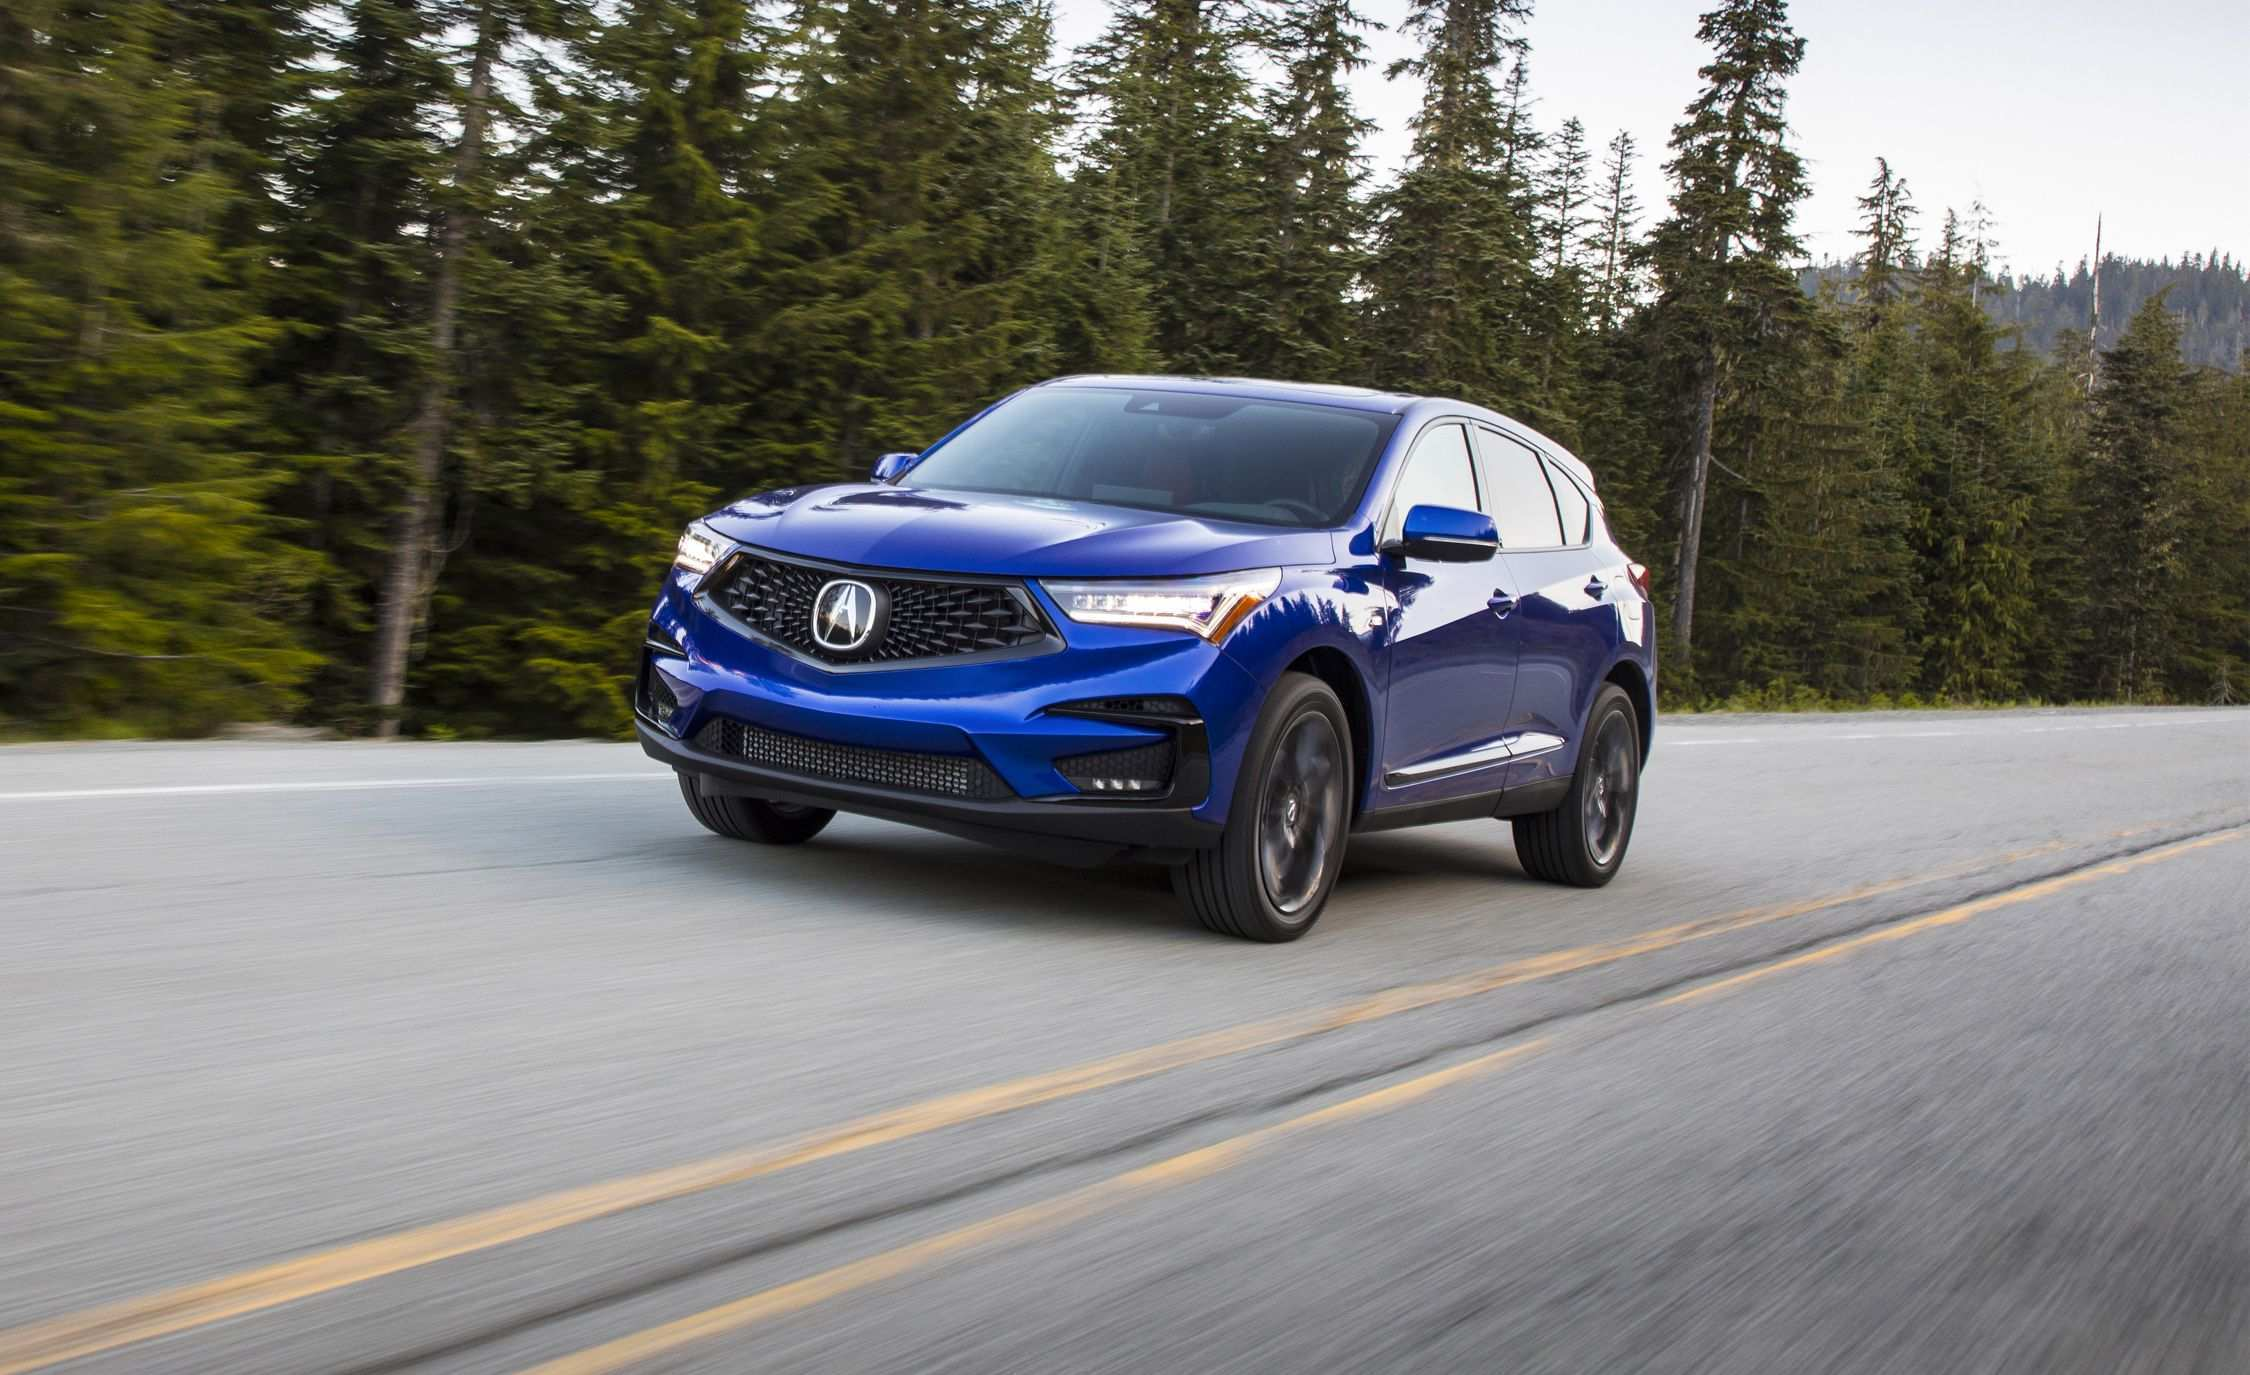 53 Concept of The Acura Rdx 2019 Lane Keep Assist Review Wallpaper with The Acura Rdx 2019 Lane Keep Assist Review